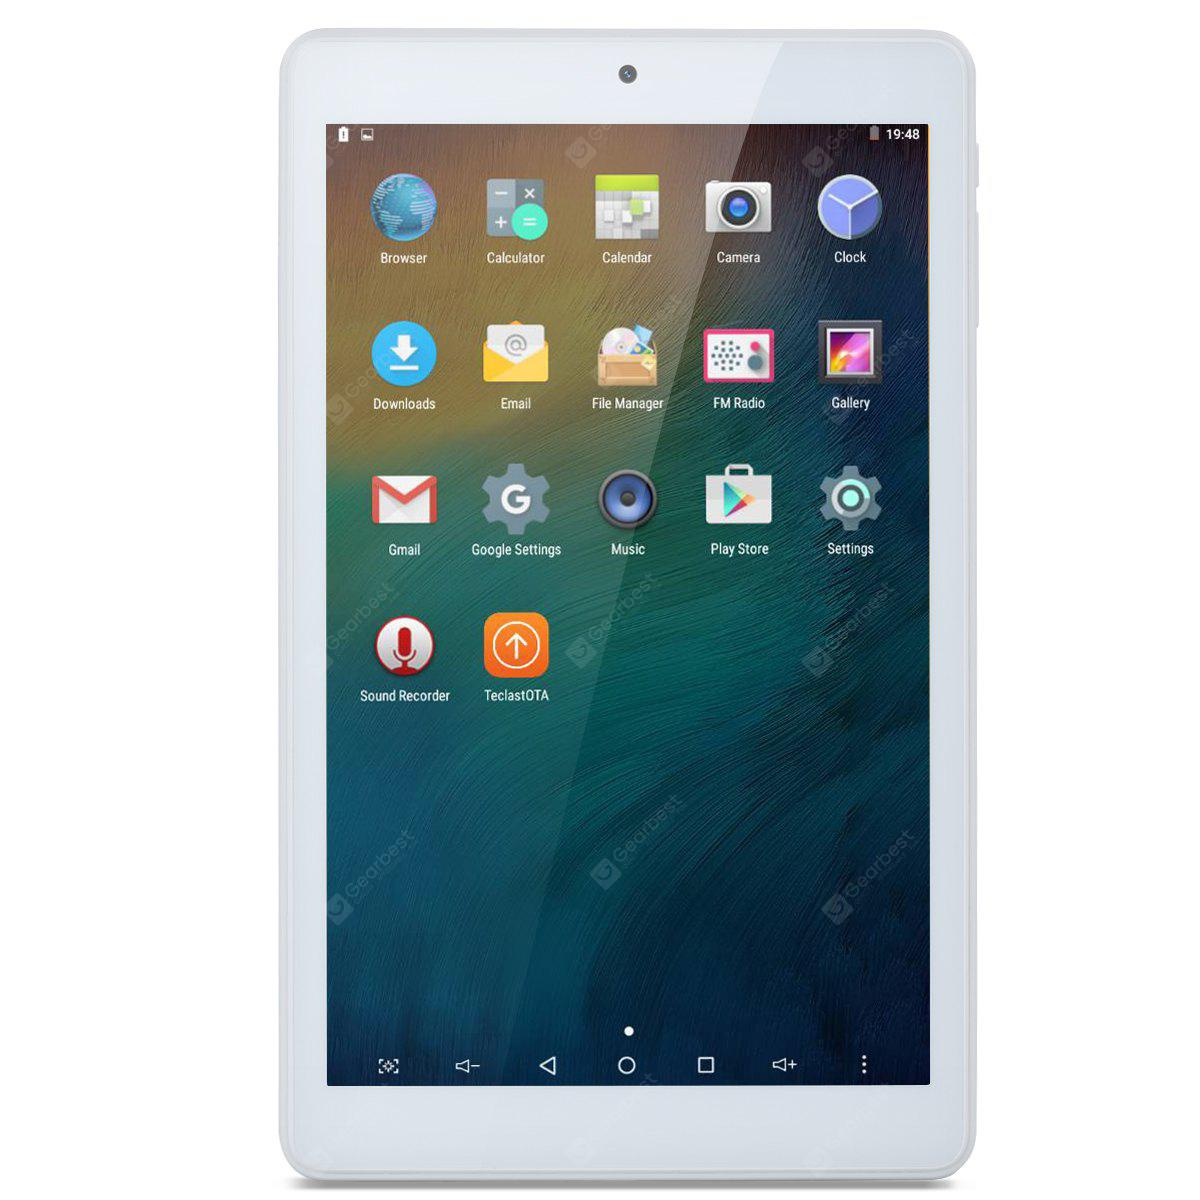 "Teclast P80H 8"" 1280x800 IPS Android 5.1 MTK8163 64bit Quad Core 2+16G 2.4G/5G GPS OTG Tablet PC"